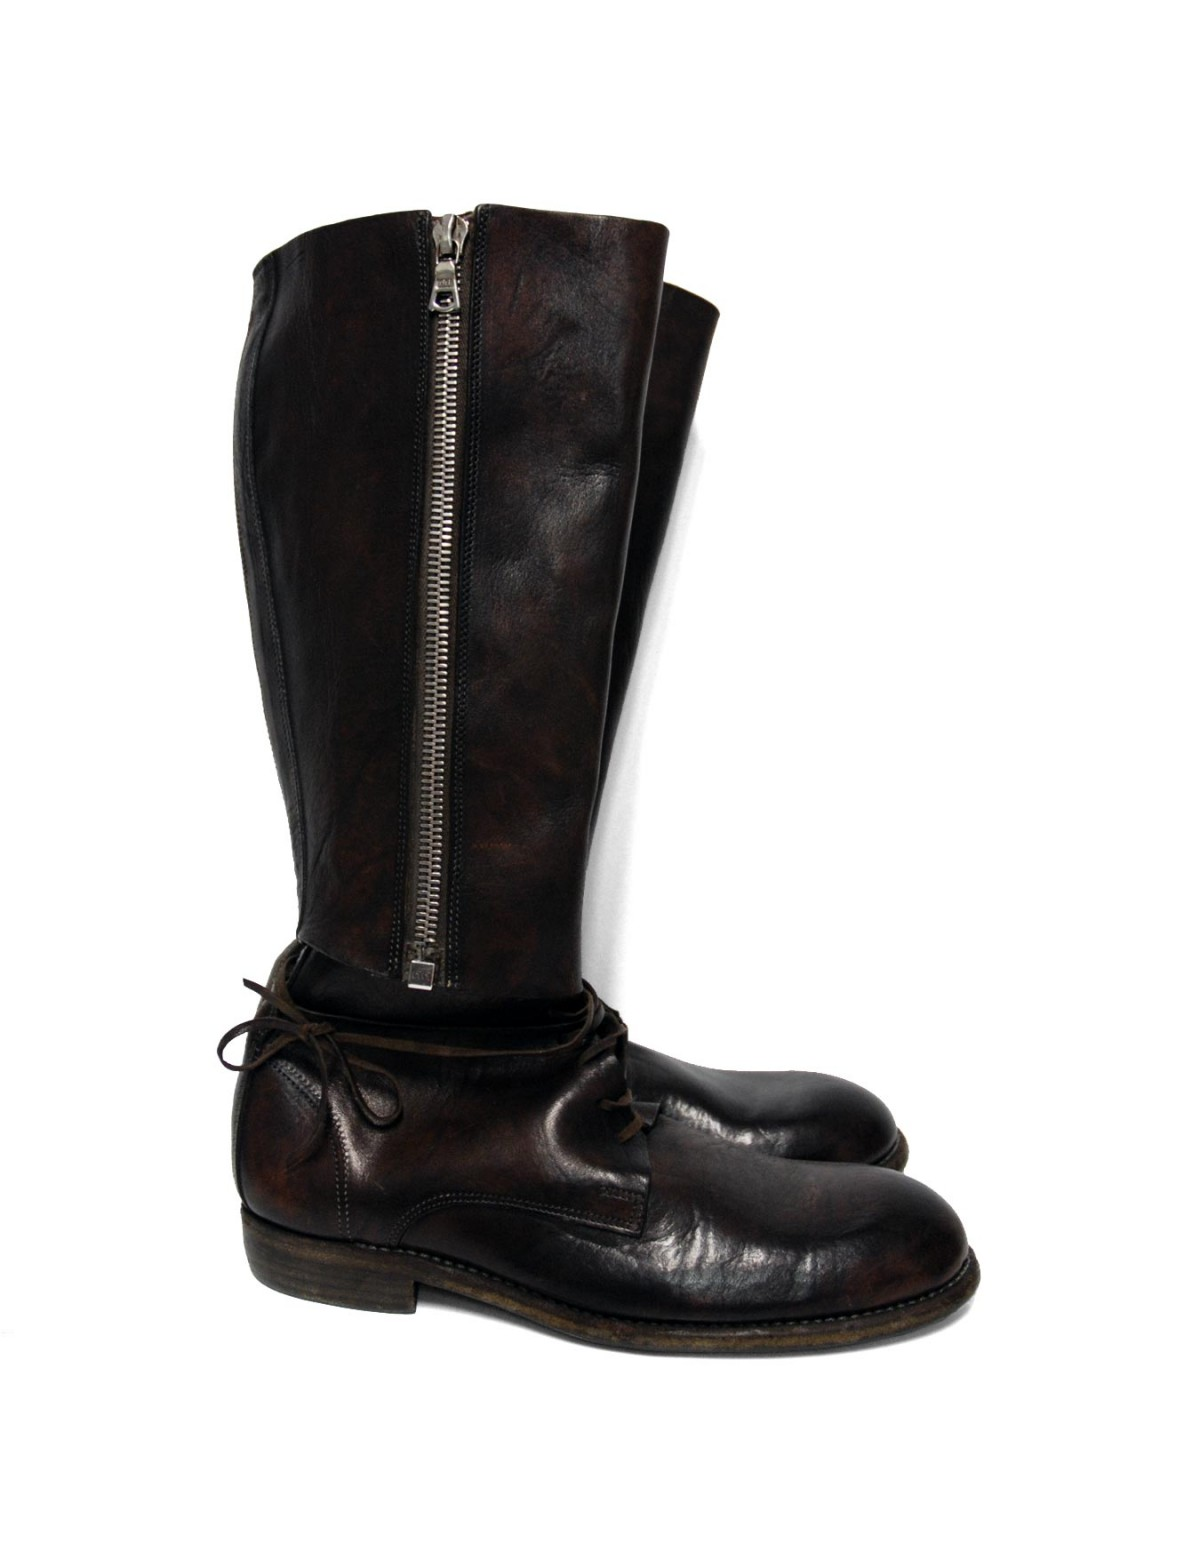 111-NOR-LEATHER-75_01